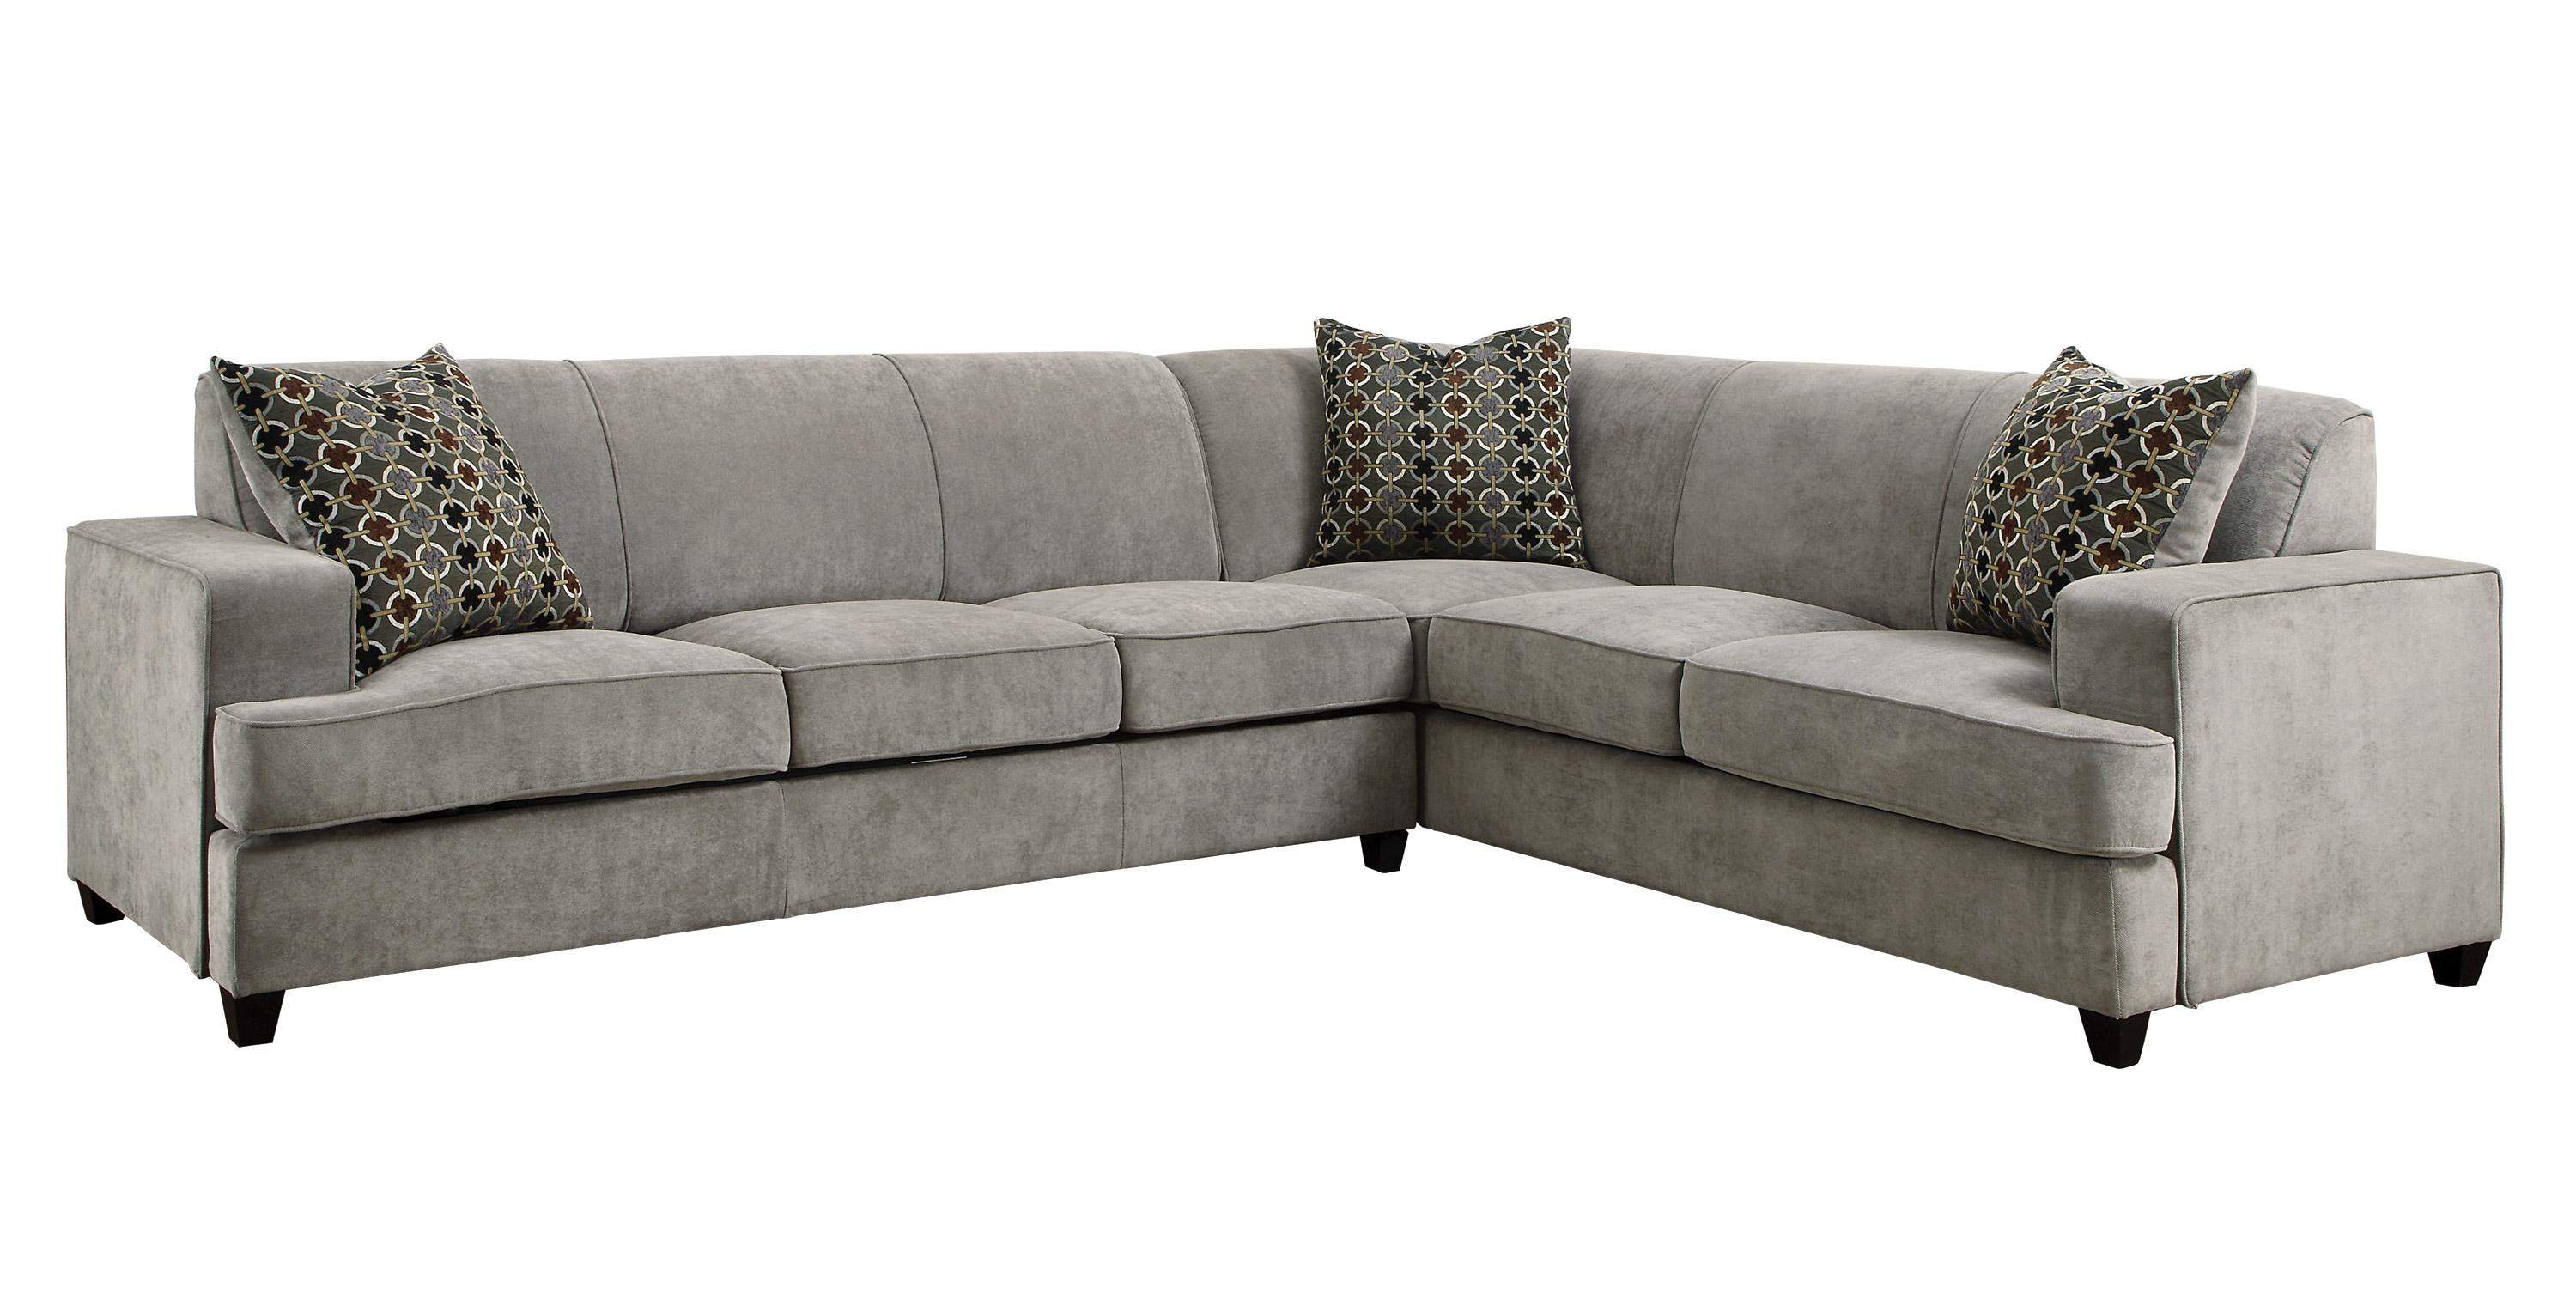 quality queen sleeper sofa lucia chaise and set tess casual grey fabric sectional for corners with